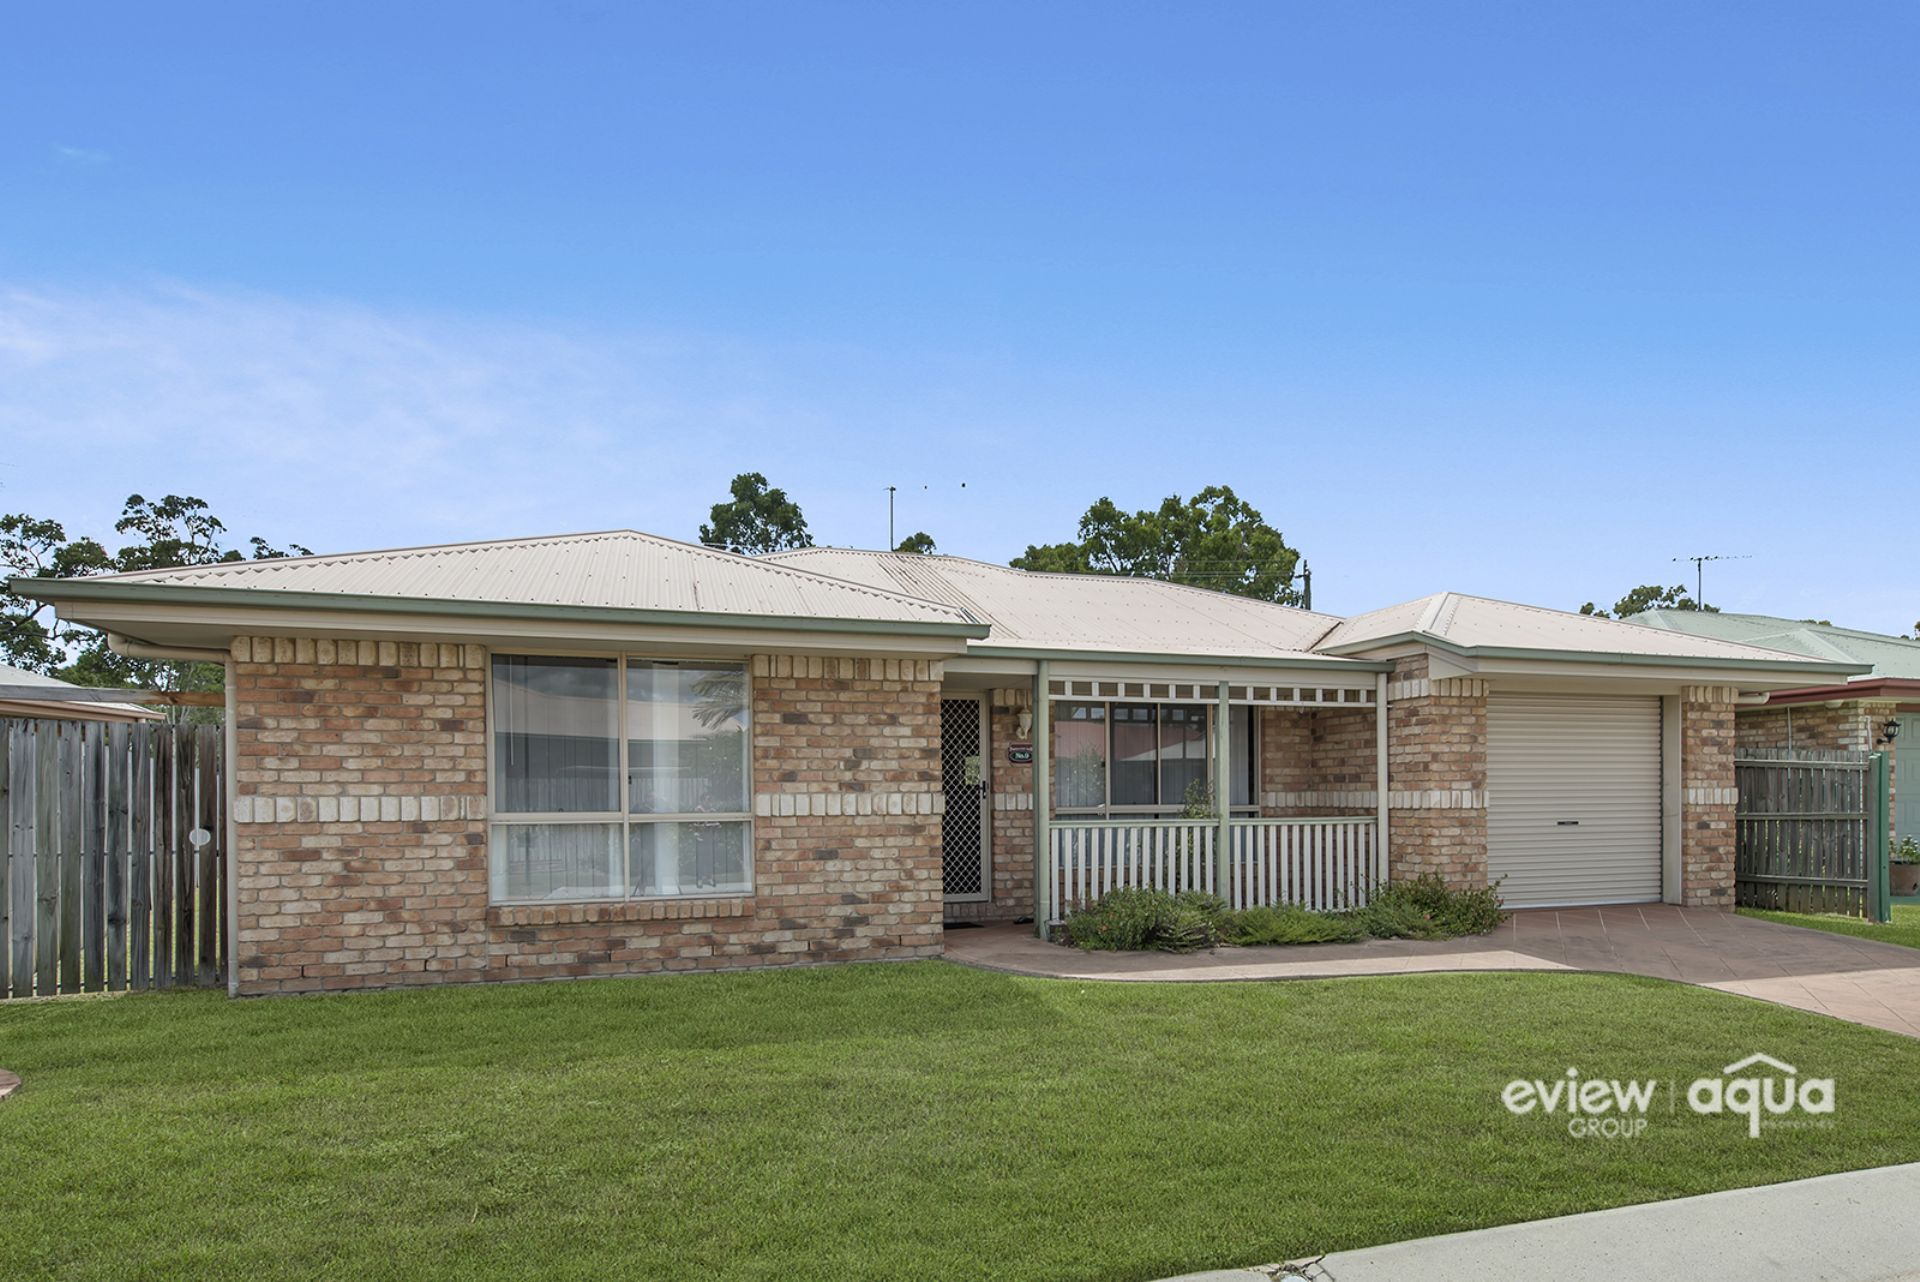 9/9 Harpulia Court, MORAYFIELD, QLD, 4506 - Image